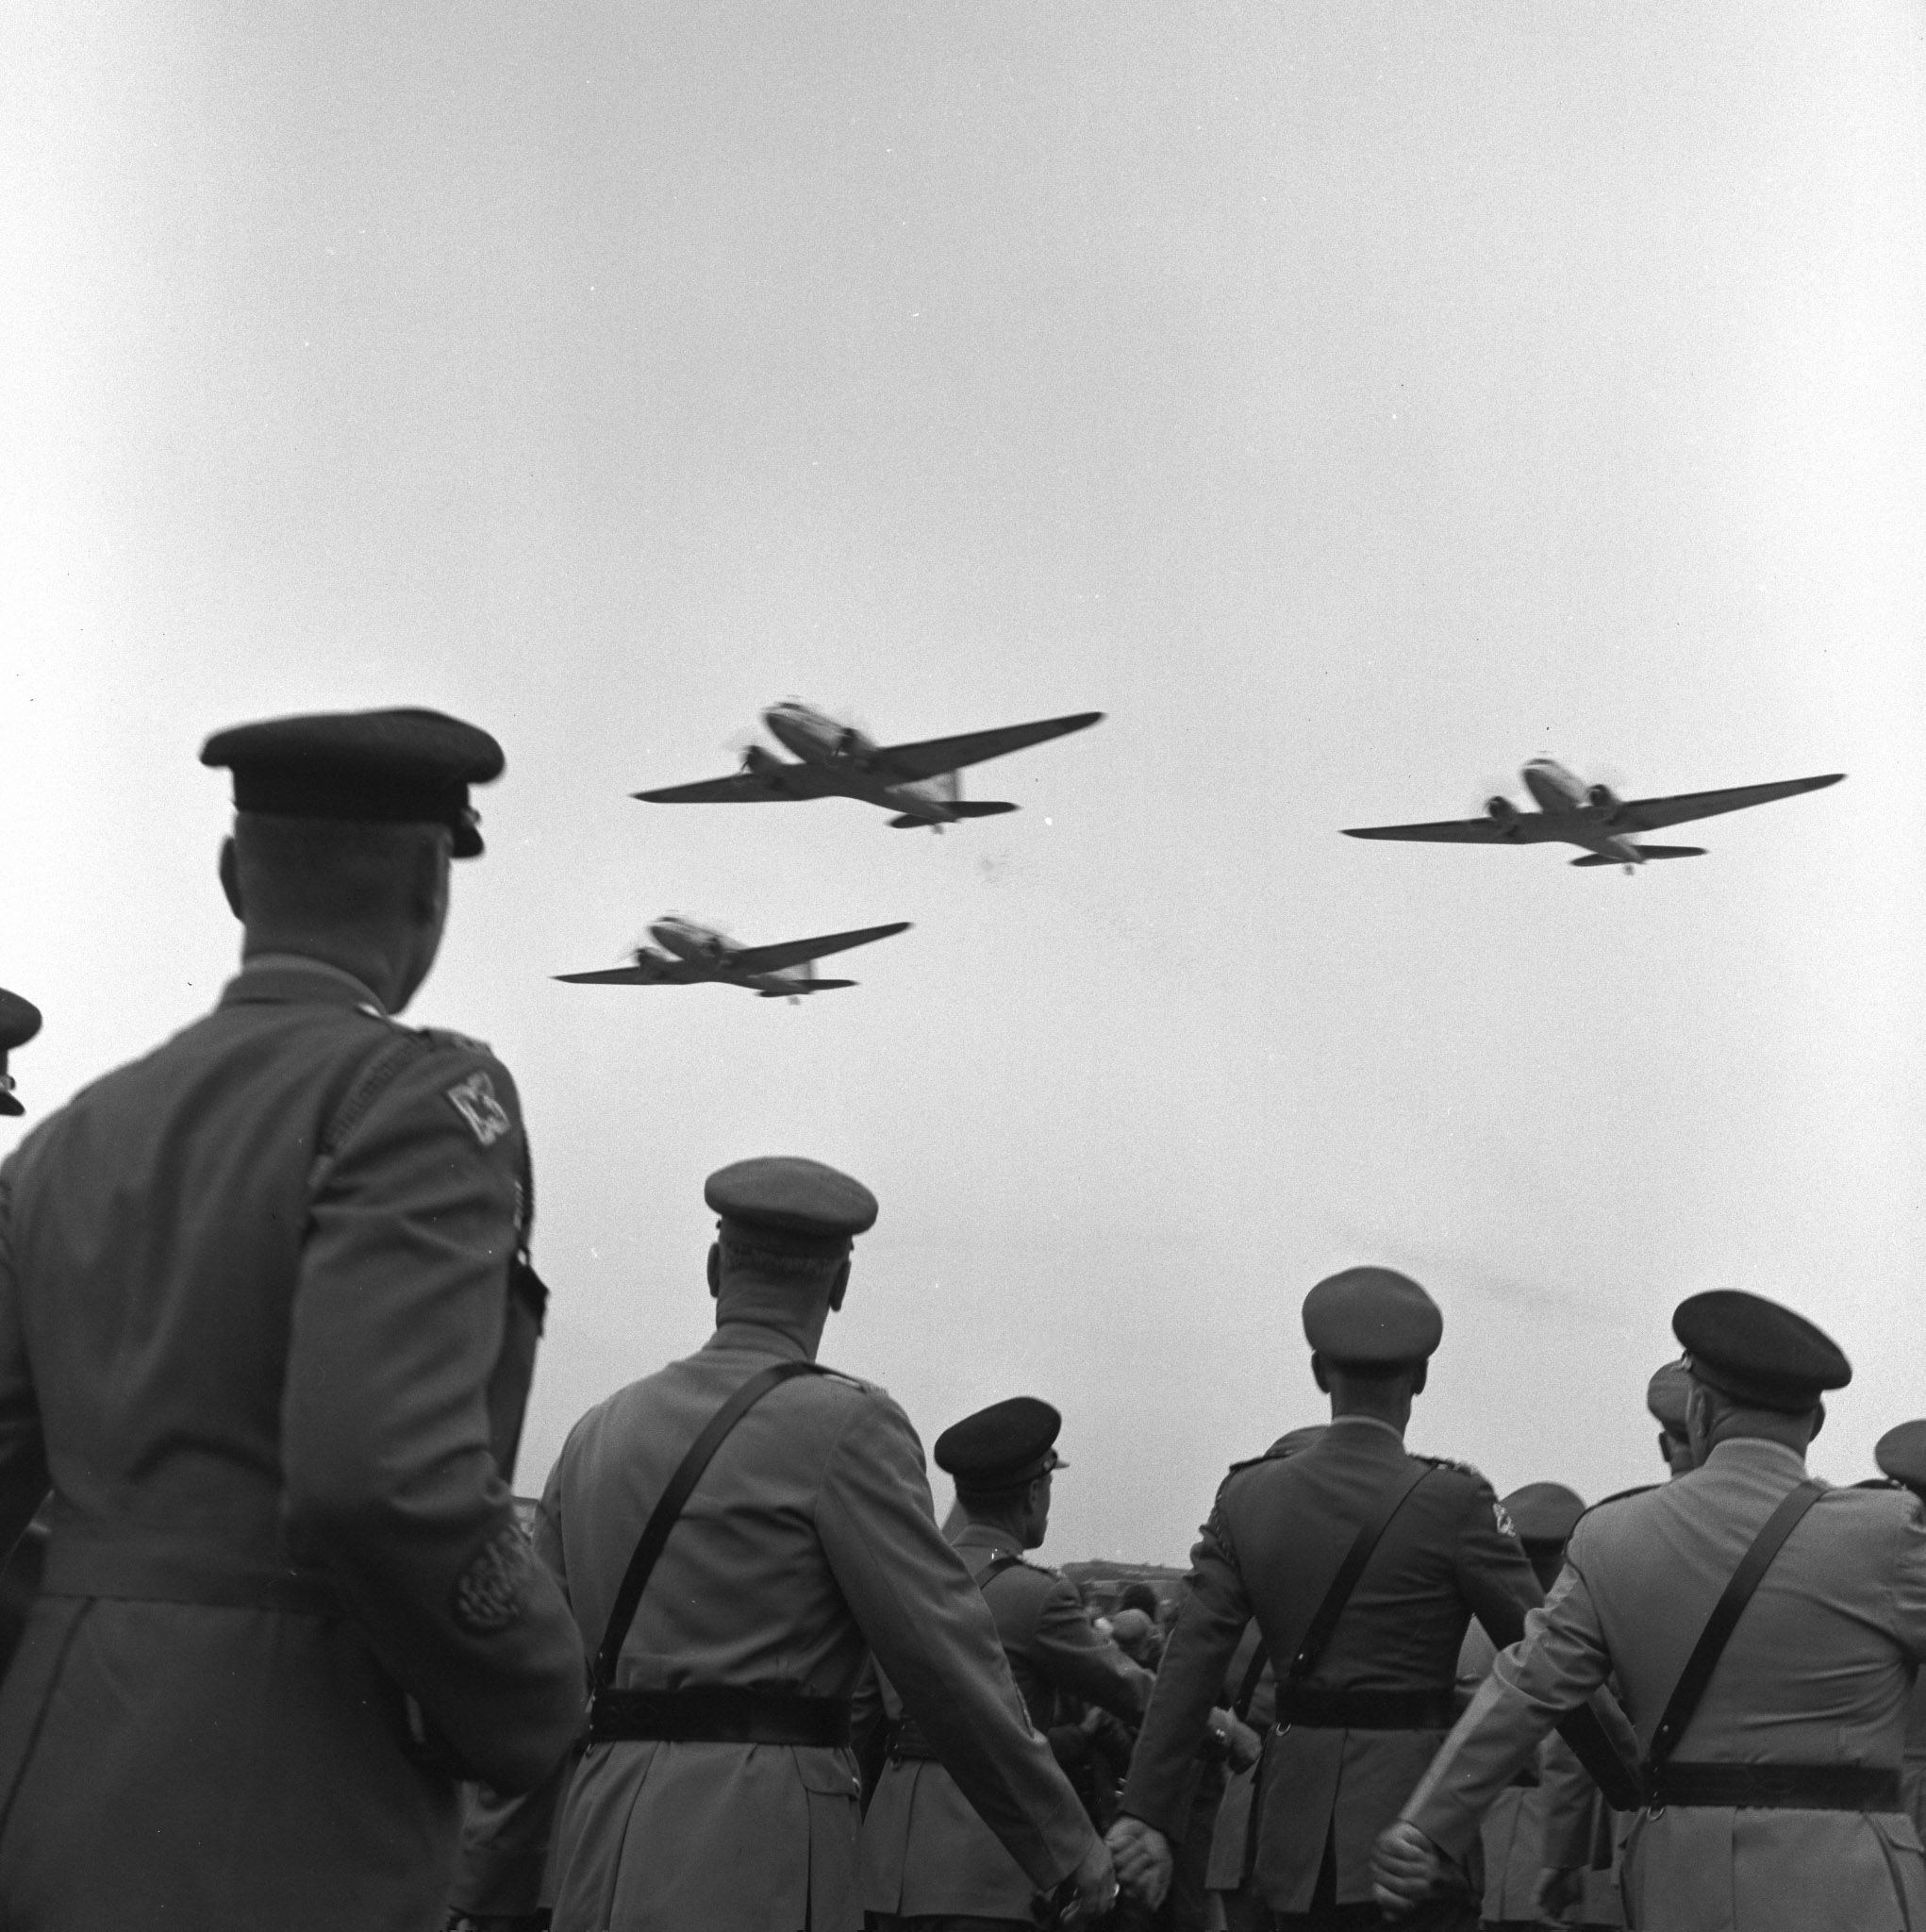 RCAF Dakota aircraft fly over Dieppe during the 25th anniversary commemoration in 1967. PHOTO: DND Archives, CF67-420-12